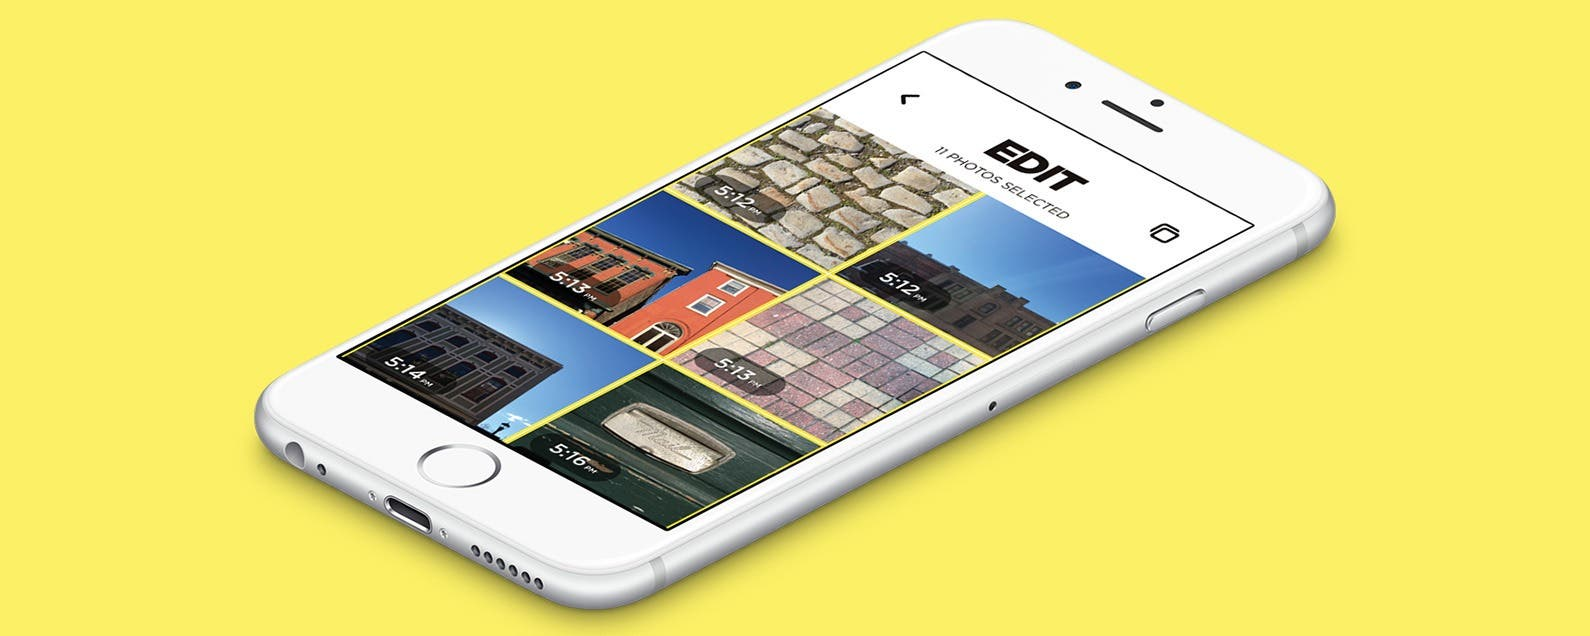 4 Best Free Gif Maker Apps For Iphone